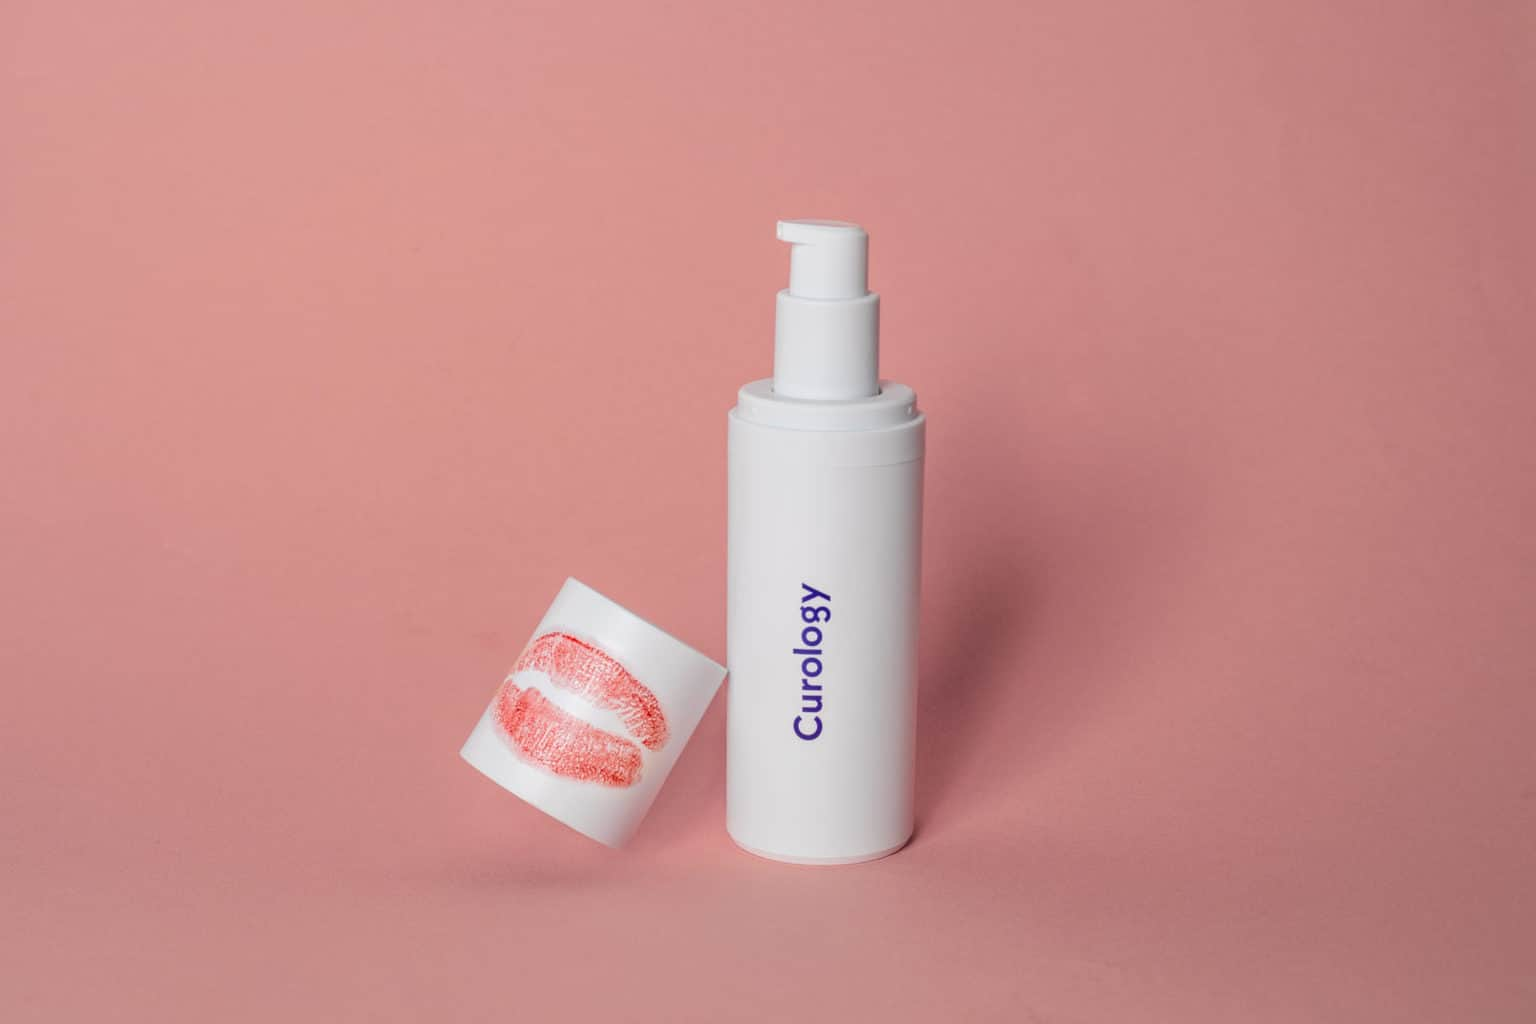 Moisturisers are terrific offering you hydration as well as safeguarding the skin's barrier. Still, if you wish to supply active ingredients deep within your dermal layers and also cause a positive action, then it is almost certain that you'll need a serum.